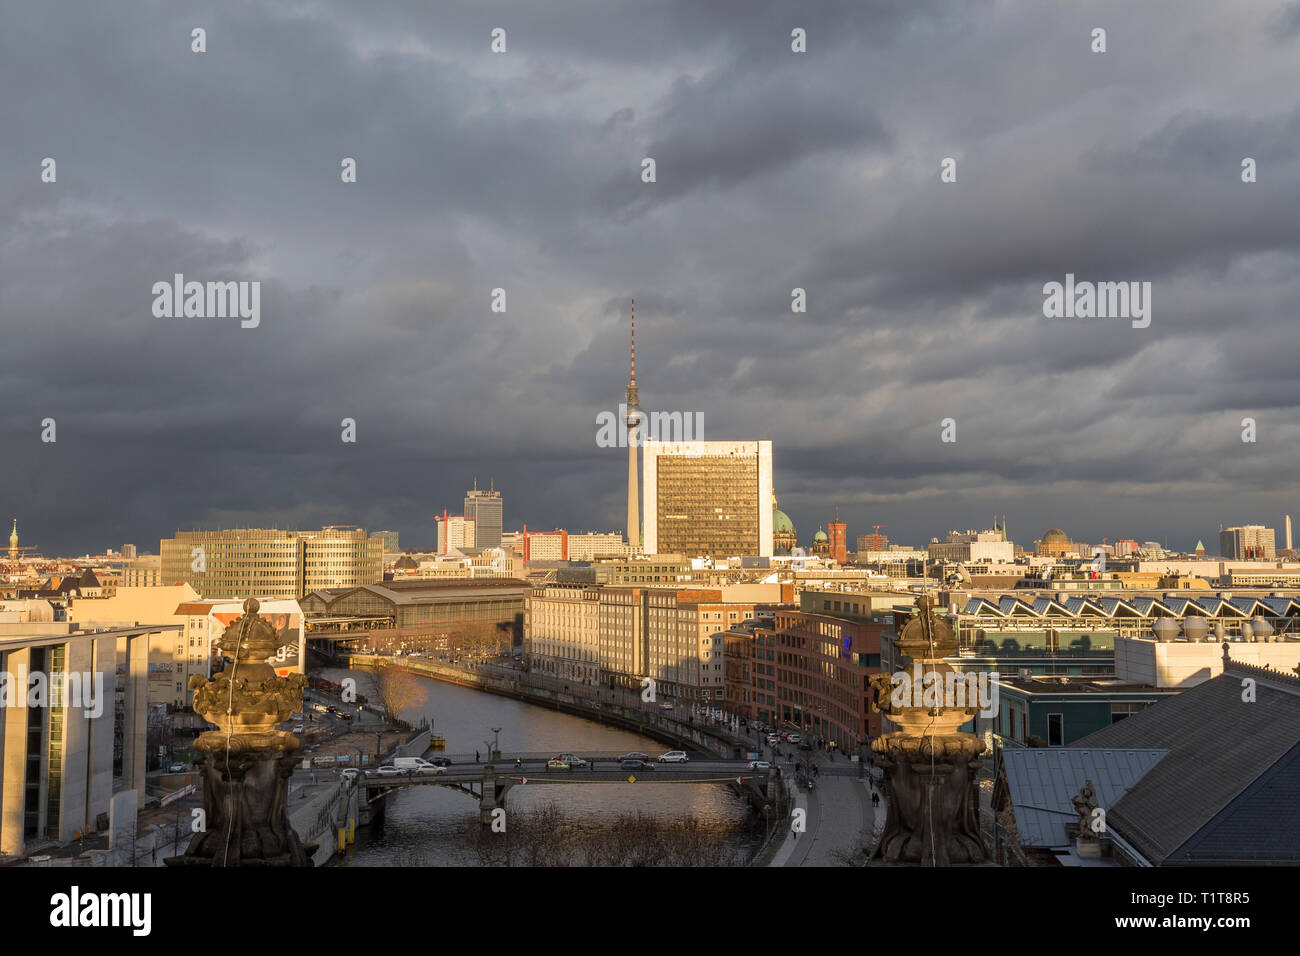 View of the Spree River, Fernsehturm TV Tower and buildings at the downtown Berlin, Germany, on a sunny day. Dark clouds. Copy space. Stock Photo